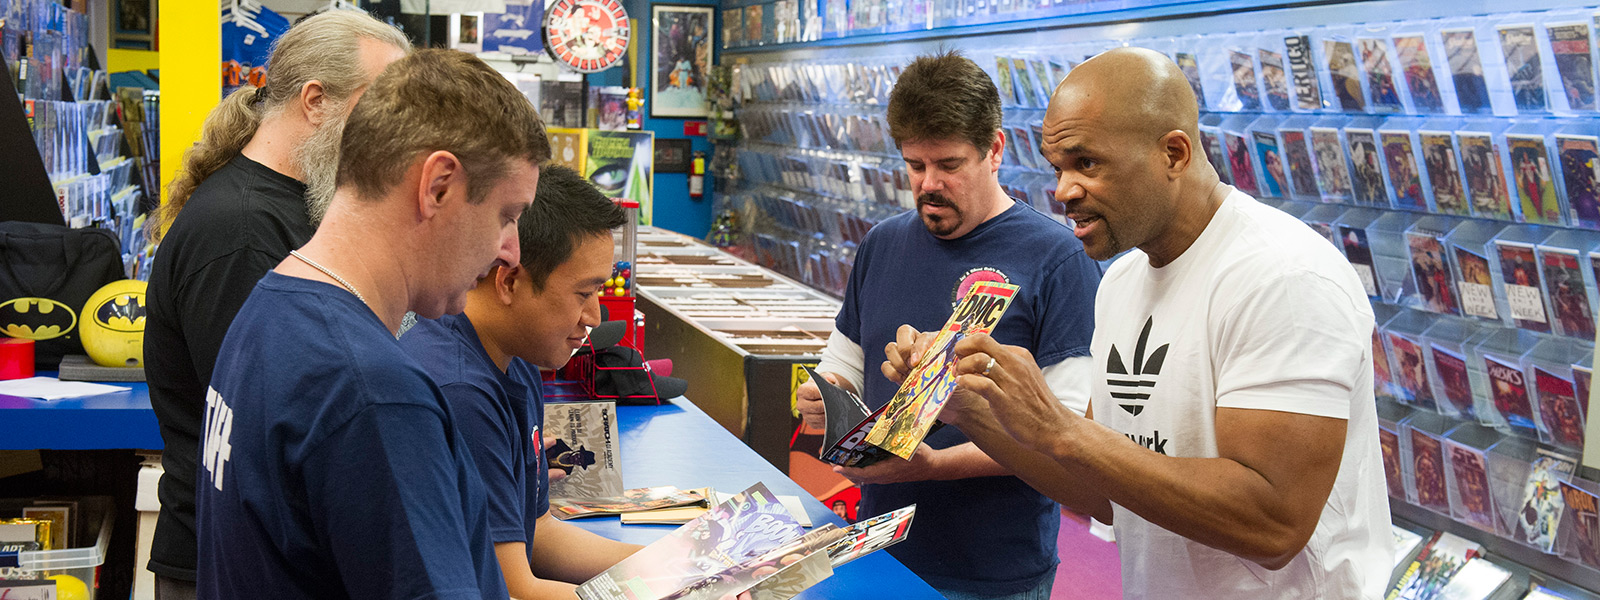 comic-book-men-episode-413-bryan-walt-ming-darryl-mcdaniels-800×600